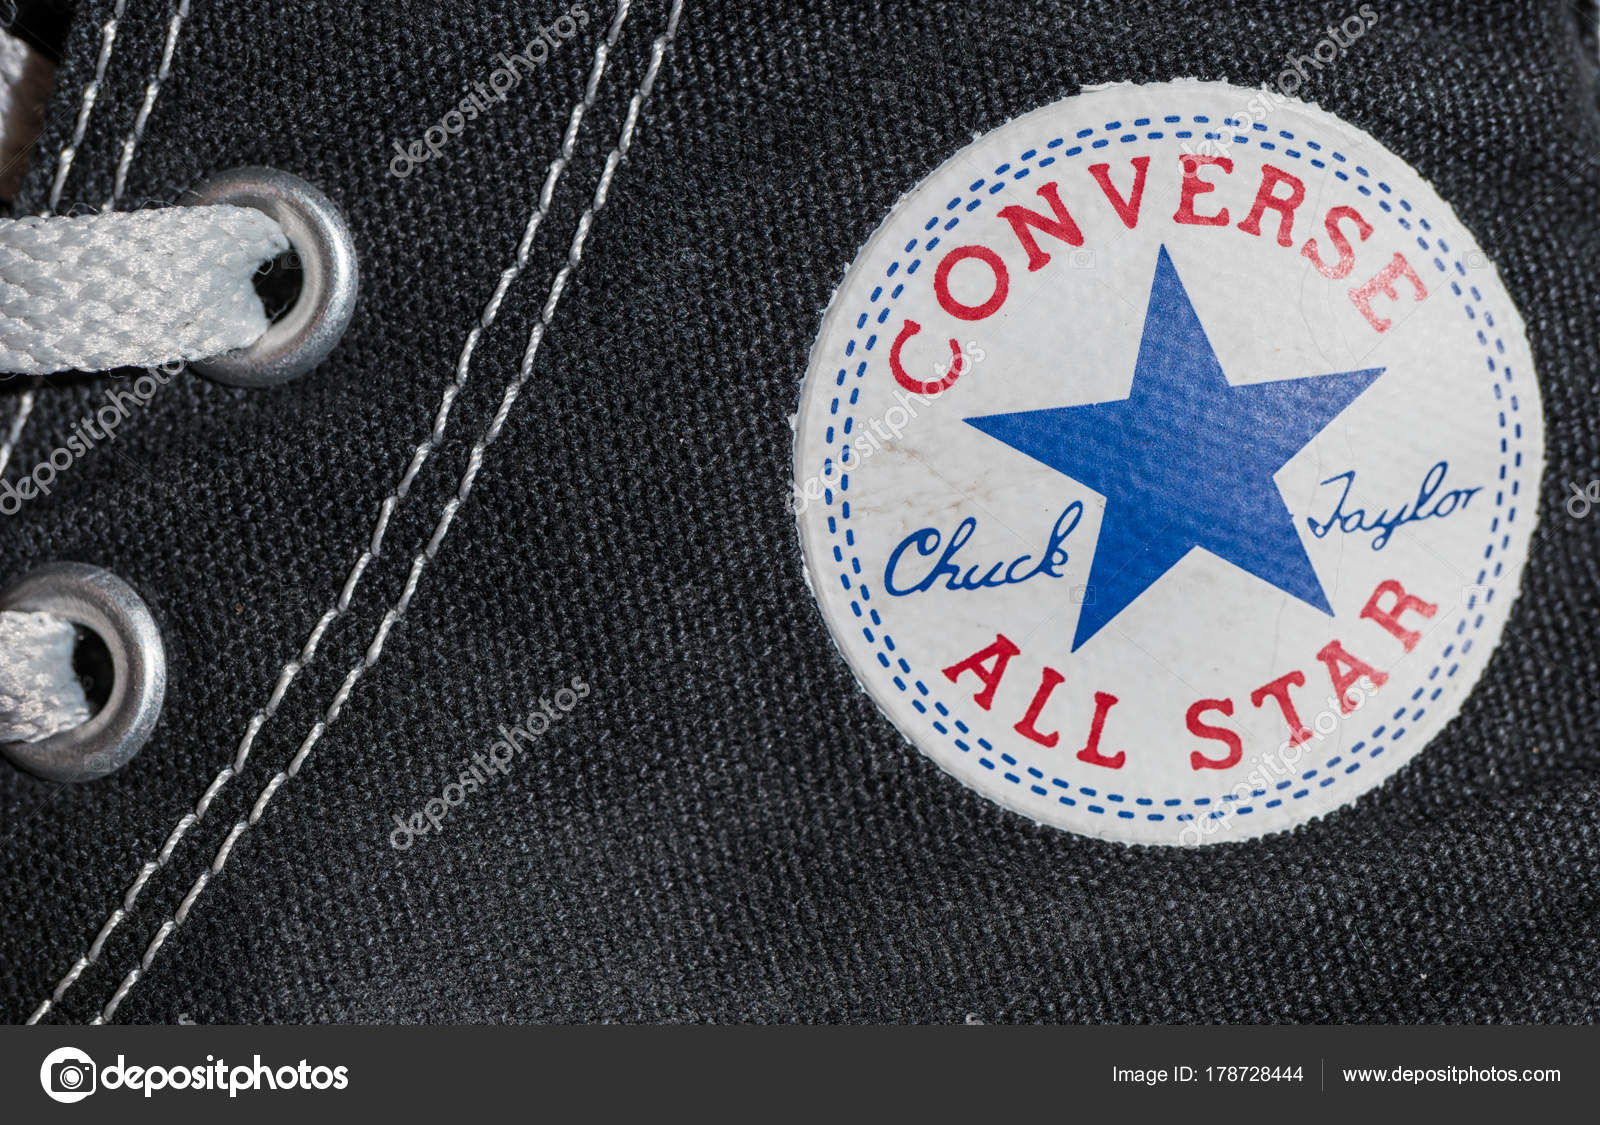 eeea77092fa Converse All star logo printed on the side of the shoe – Stock ...